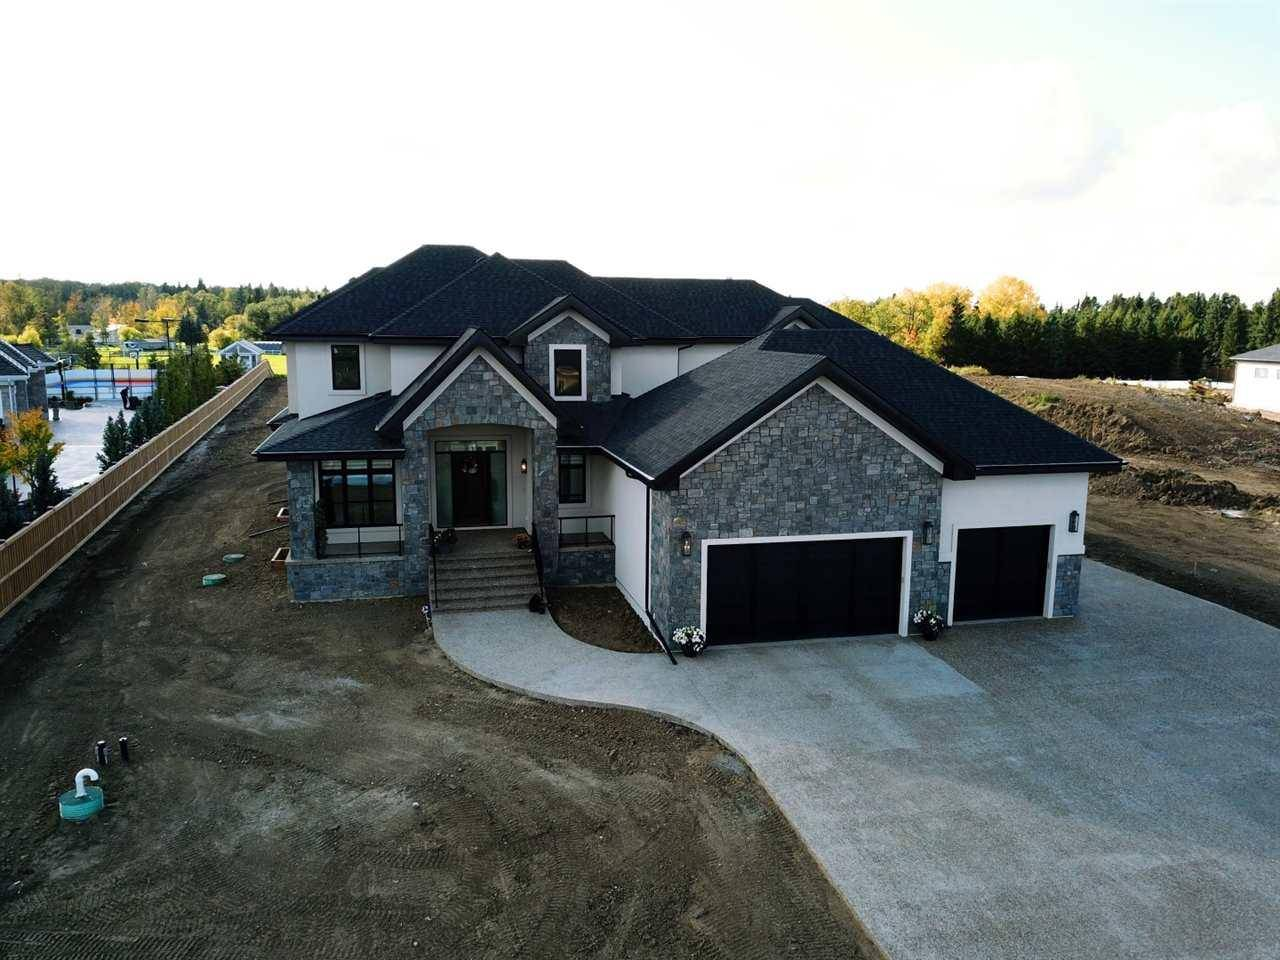 420 - 52320 Rge Road, Rural Strathcona County | Image 2